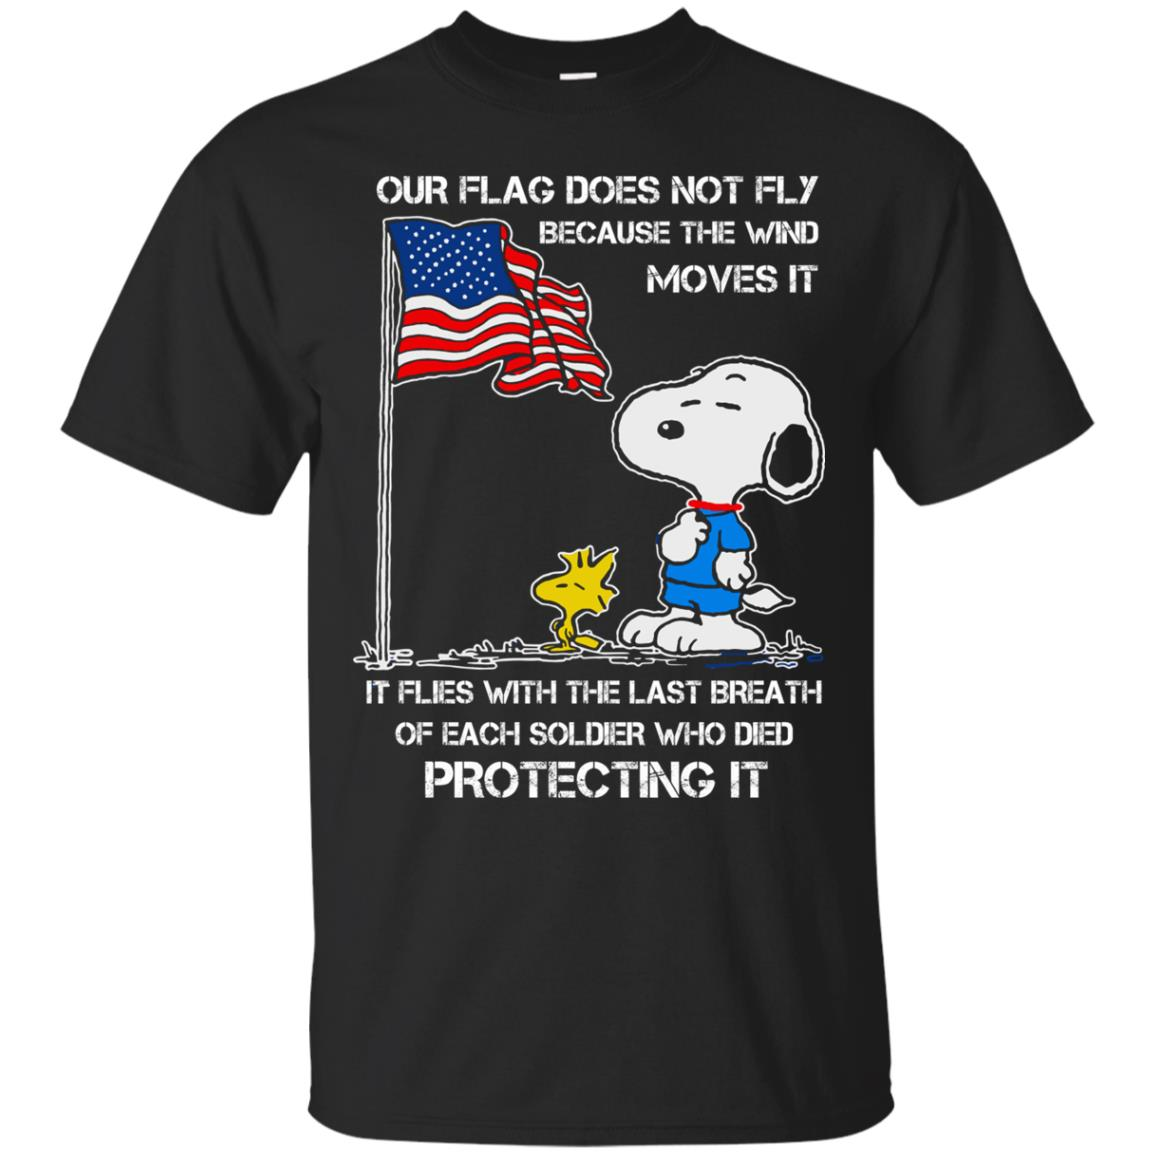 image 795 - Snoopy: Our flag does not fly because the wind moves it shirt, sweater